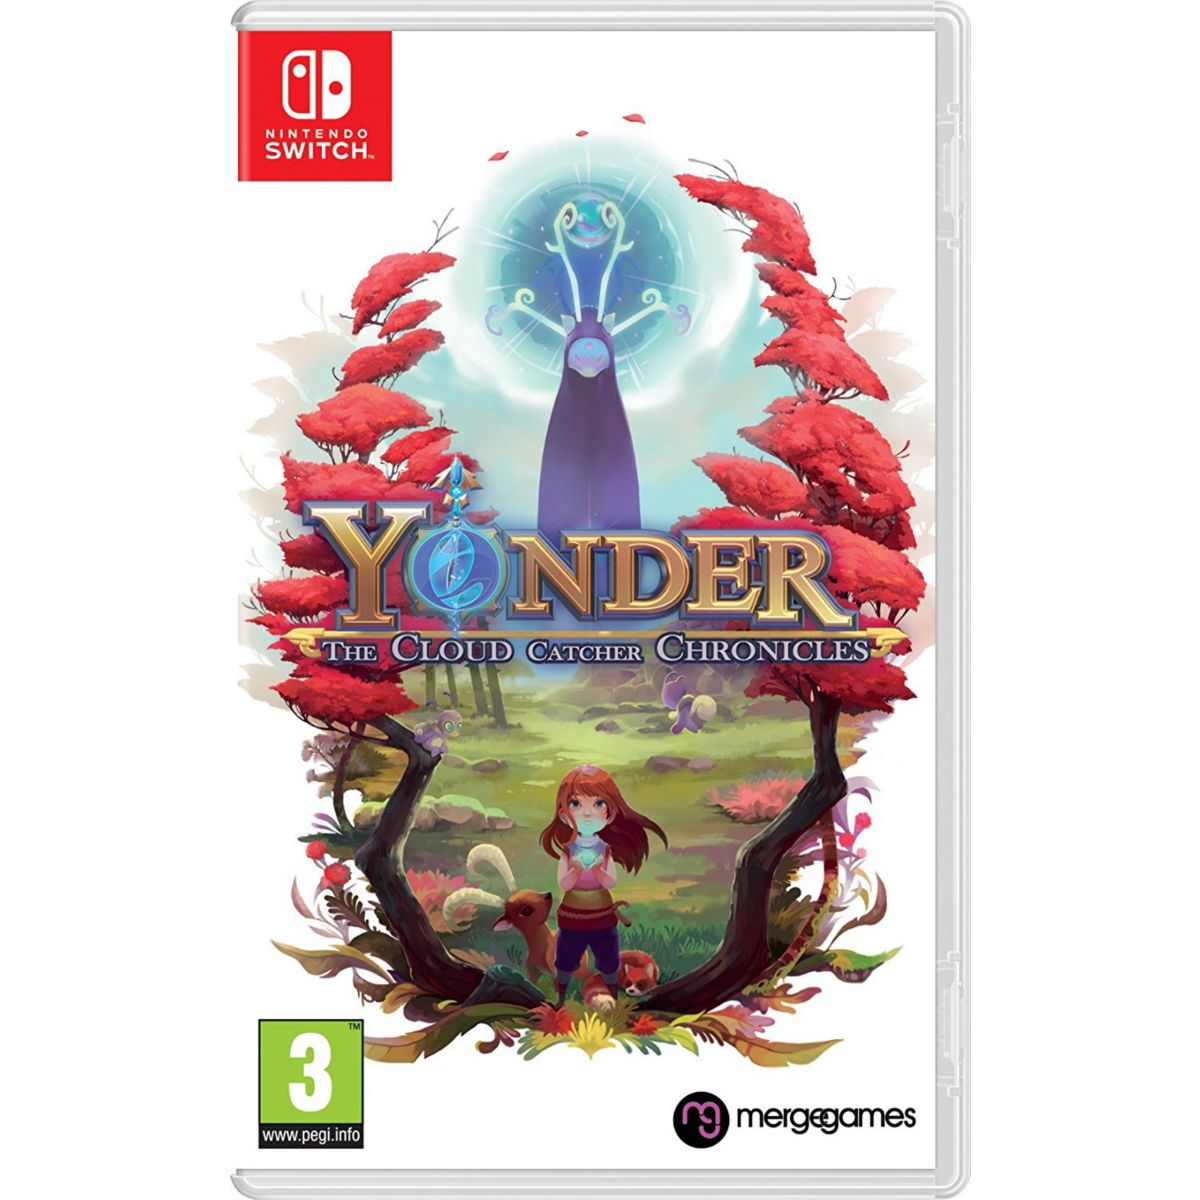 Jeu Switch JUST FOR GAMES Yonder The Cloud Catcher Chronicles